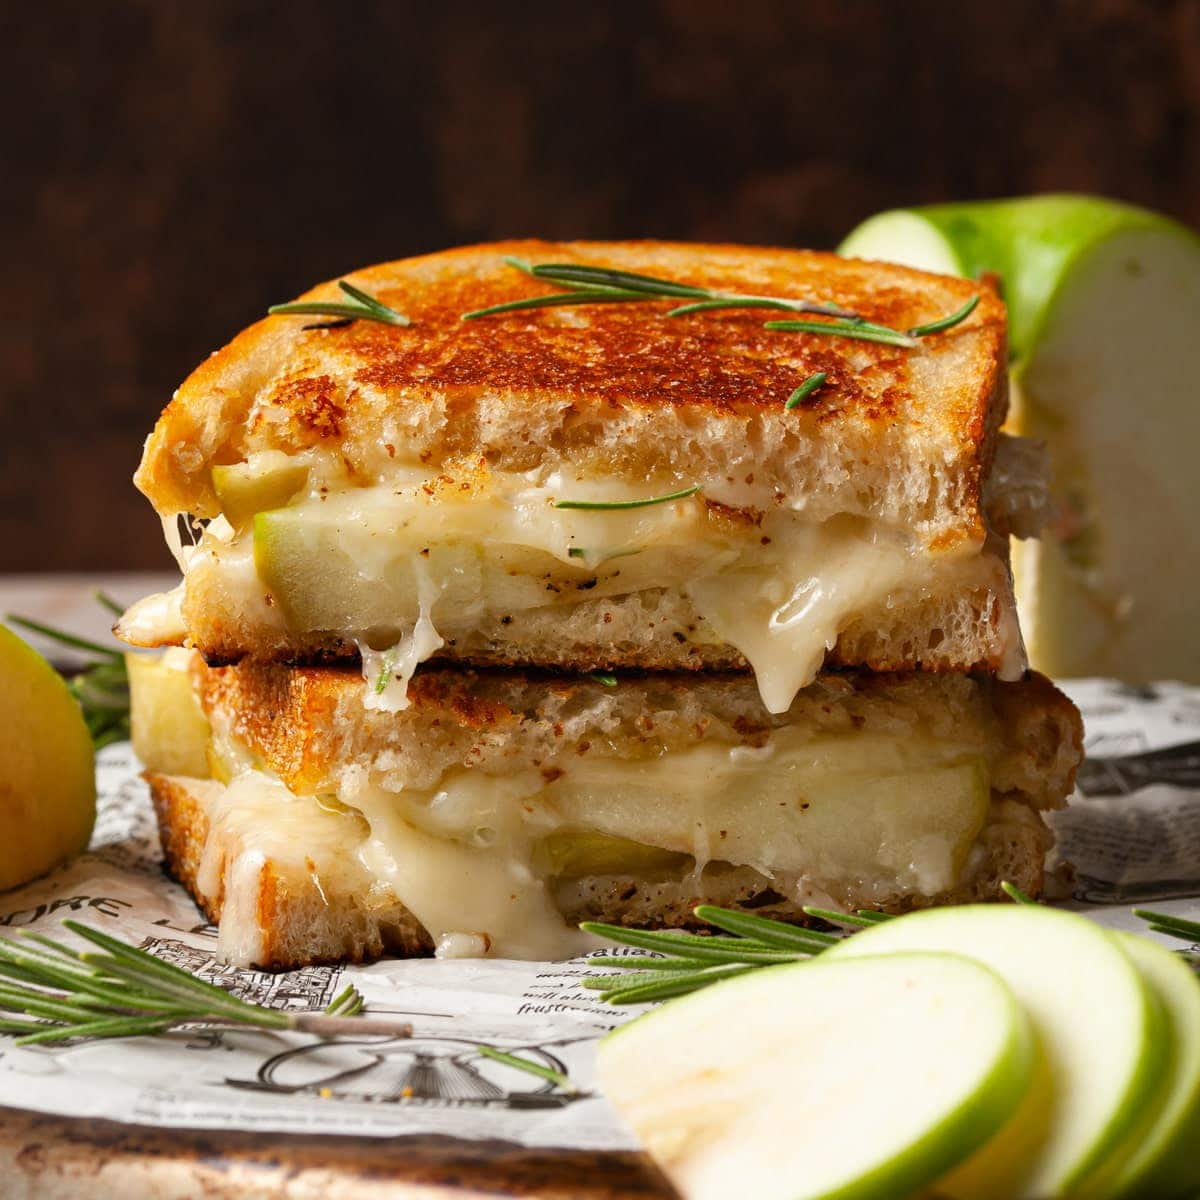 grilled cheese with brie oozing out and apple slices